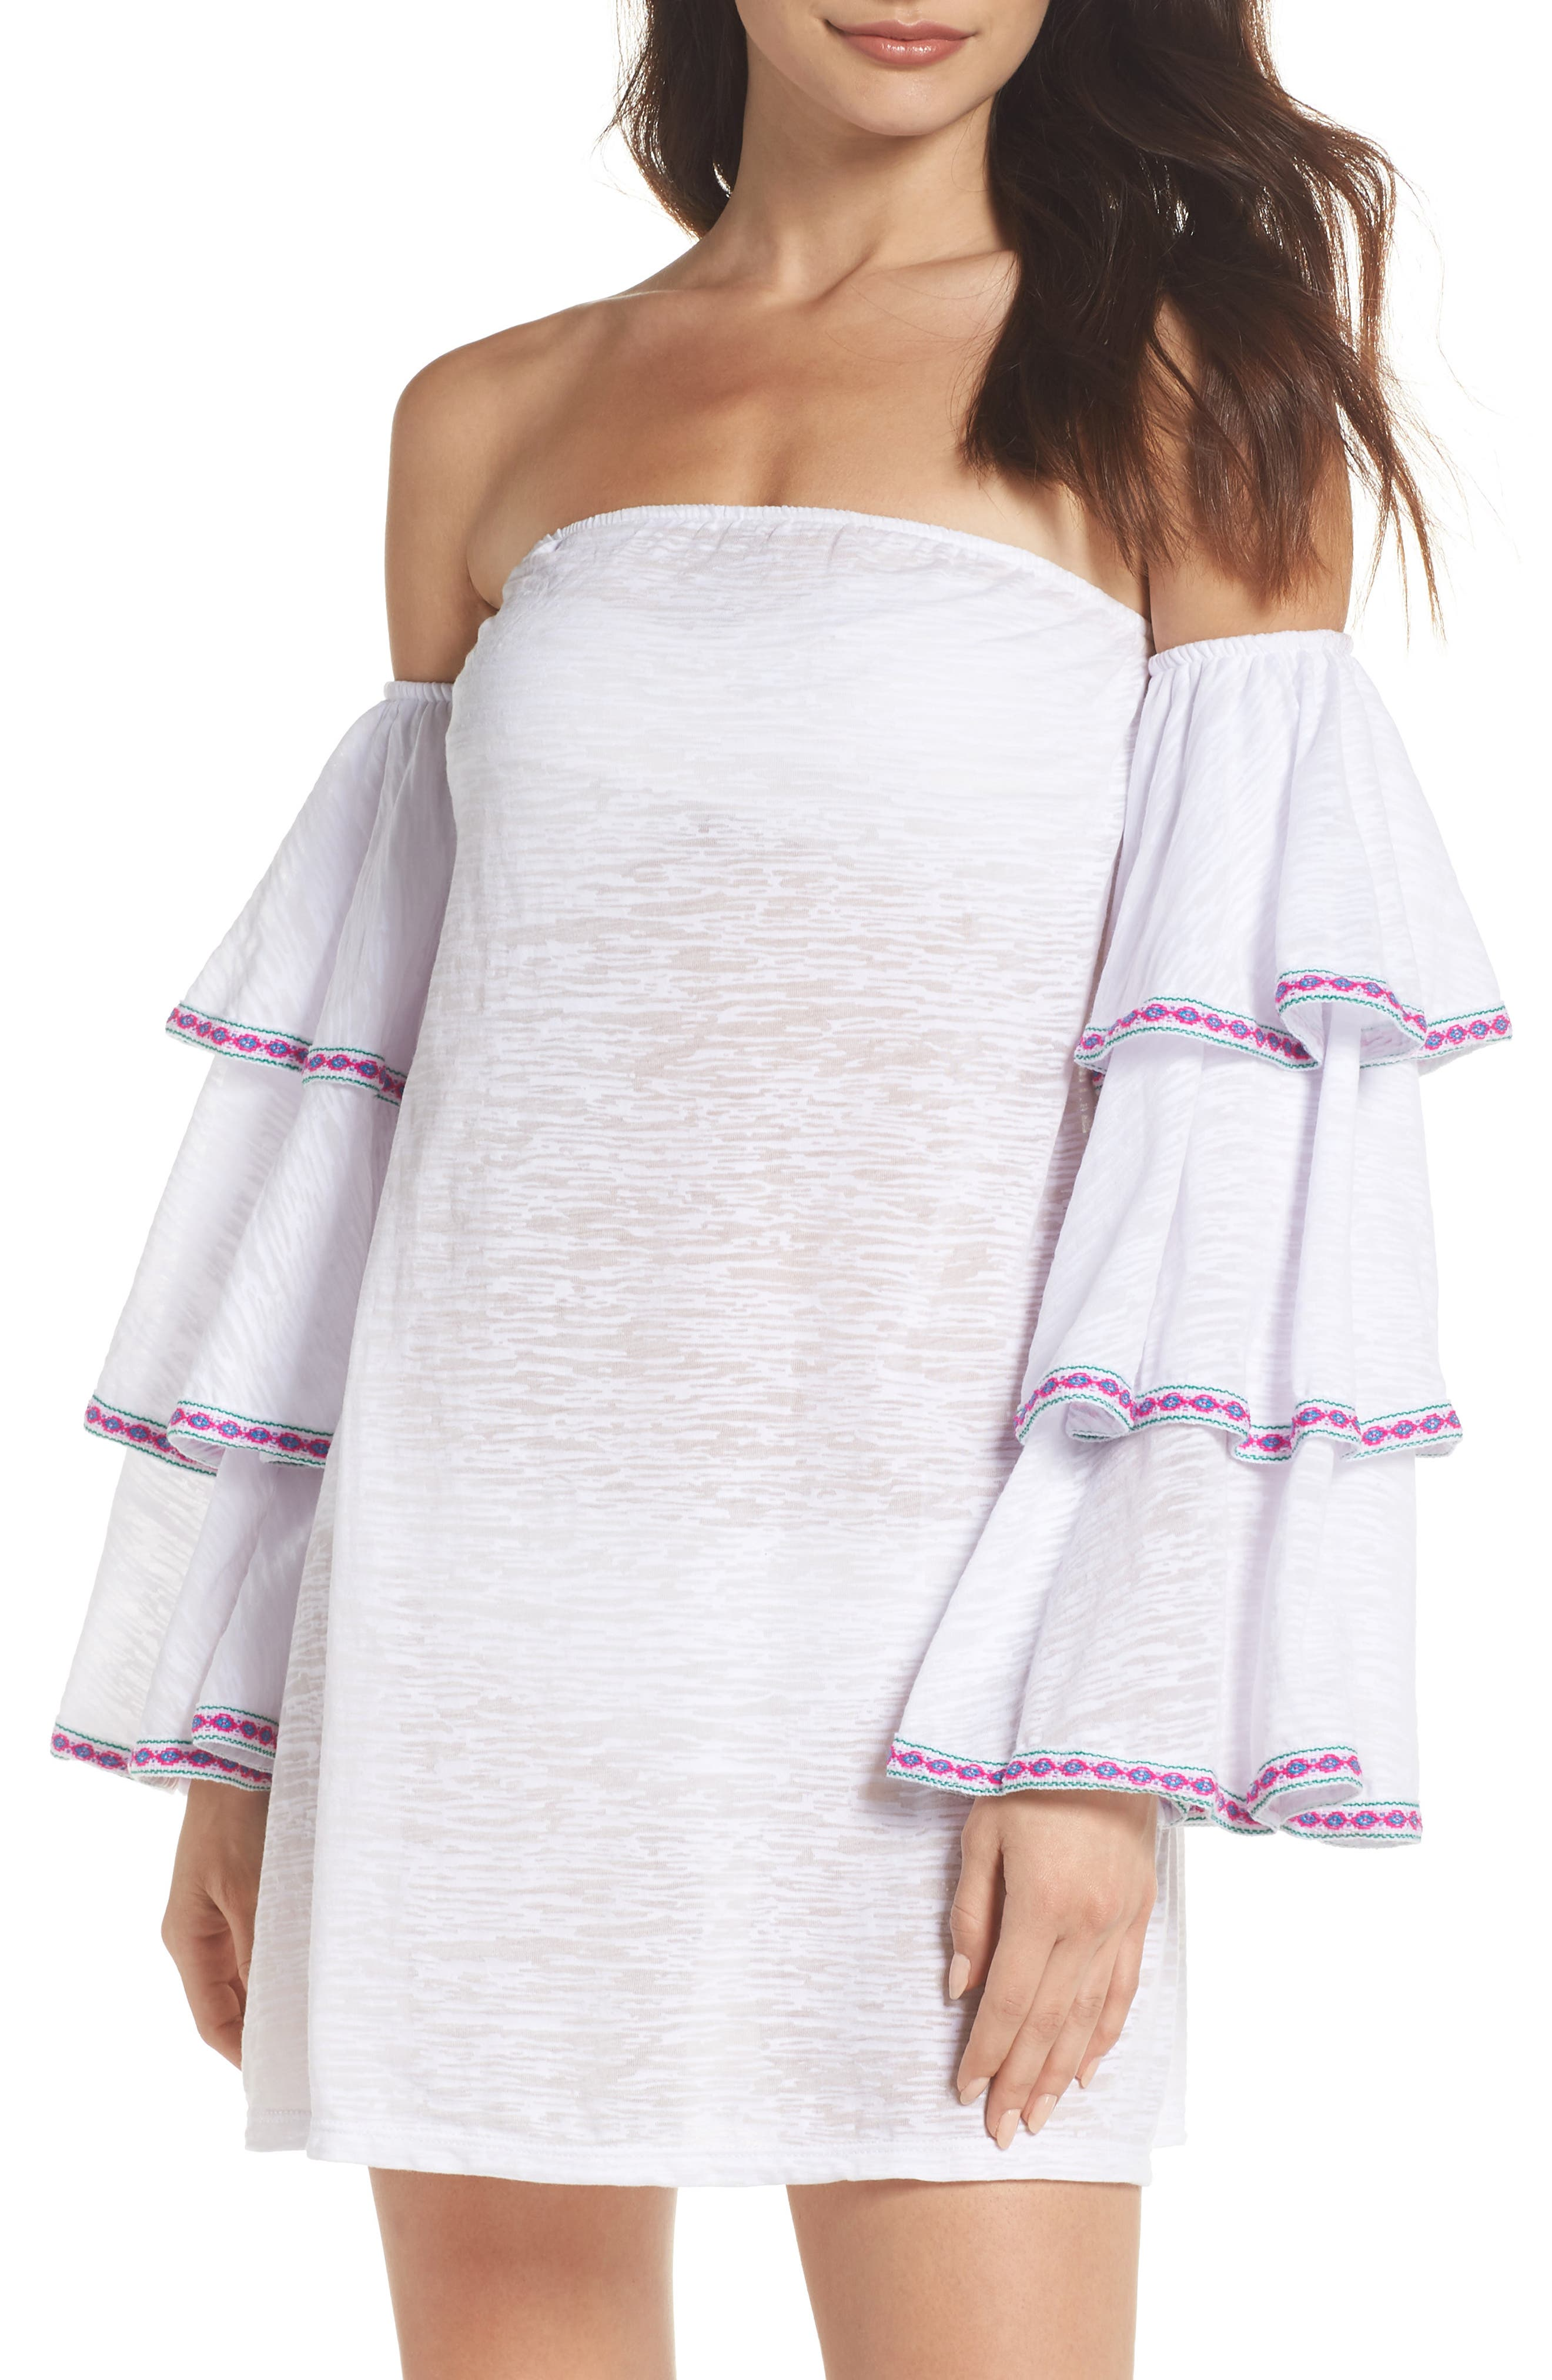 Off the Shoulder Cover-Up Dress,                         Main,                         color, White